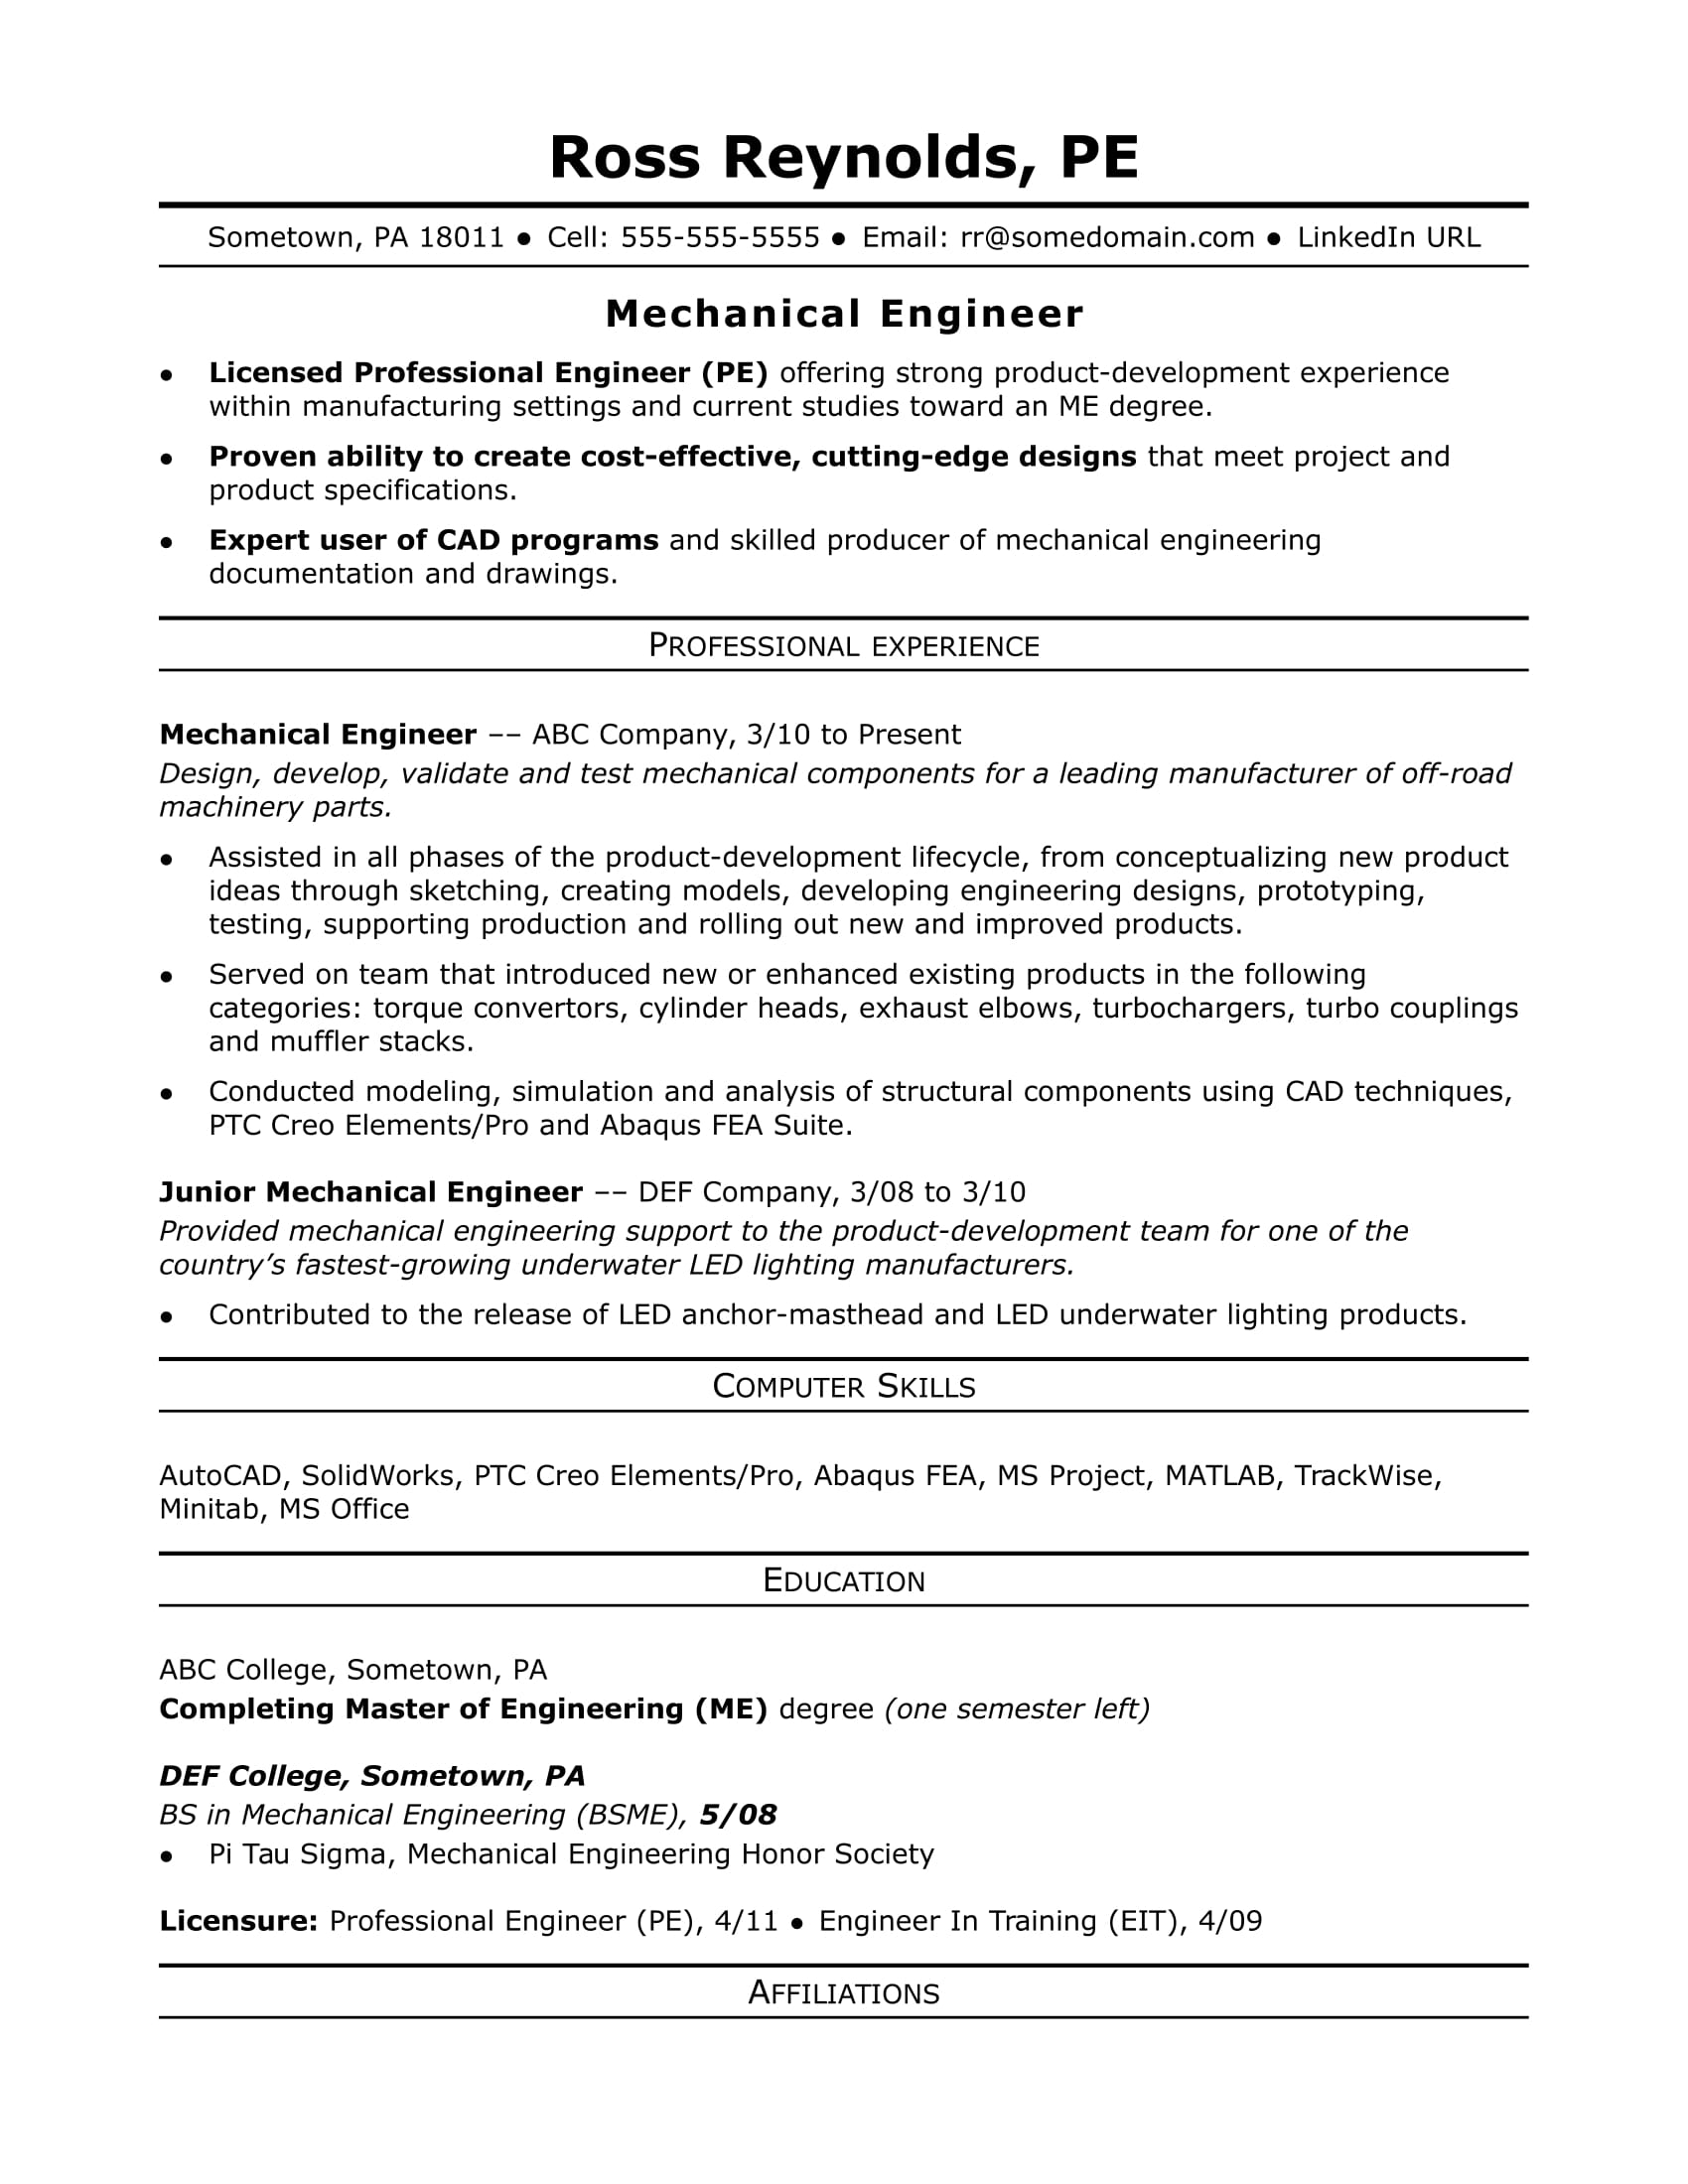 Sample Resume For A Midlevel Mechanical Engineer Monster